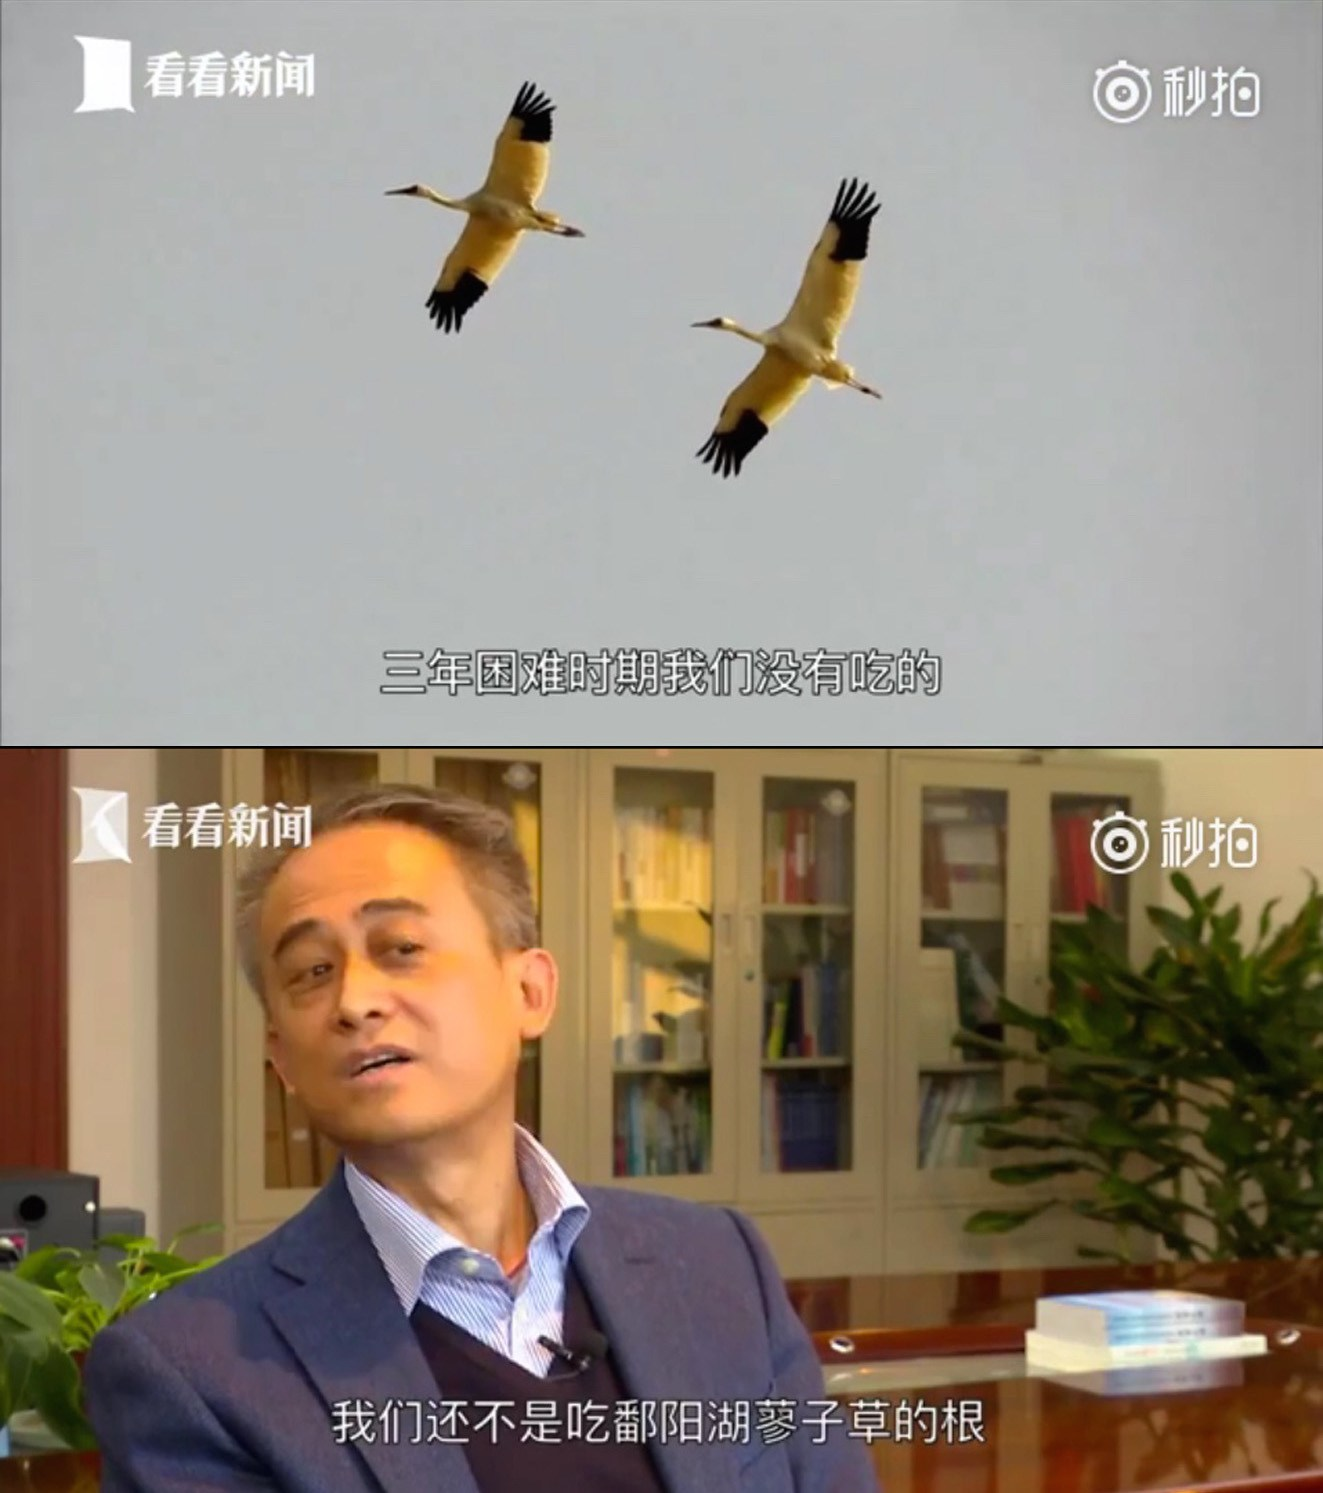 Netizen Voices: Official Tries to Manage Bird Evolution